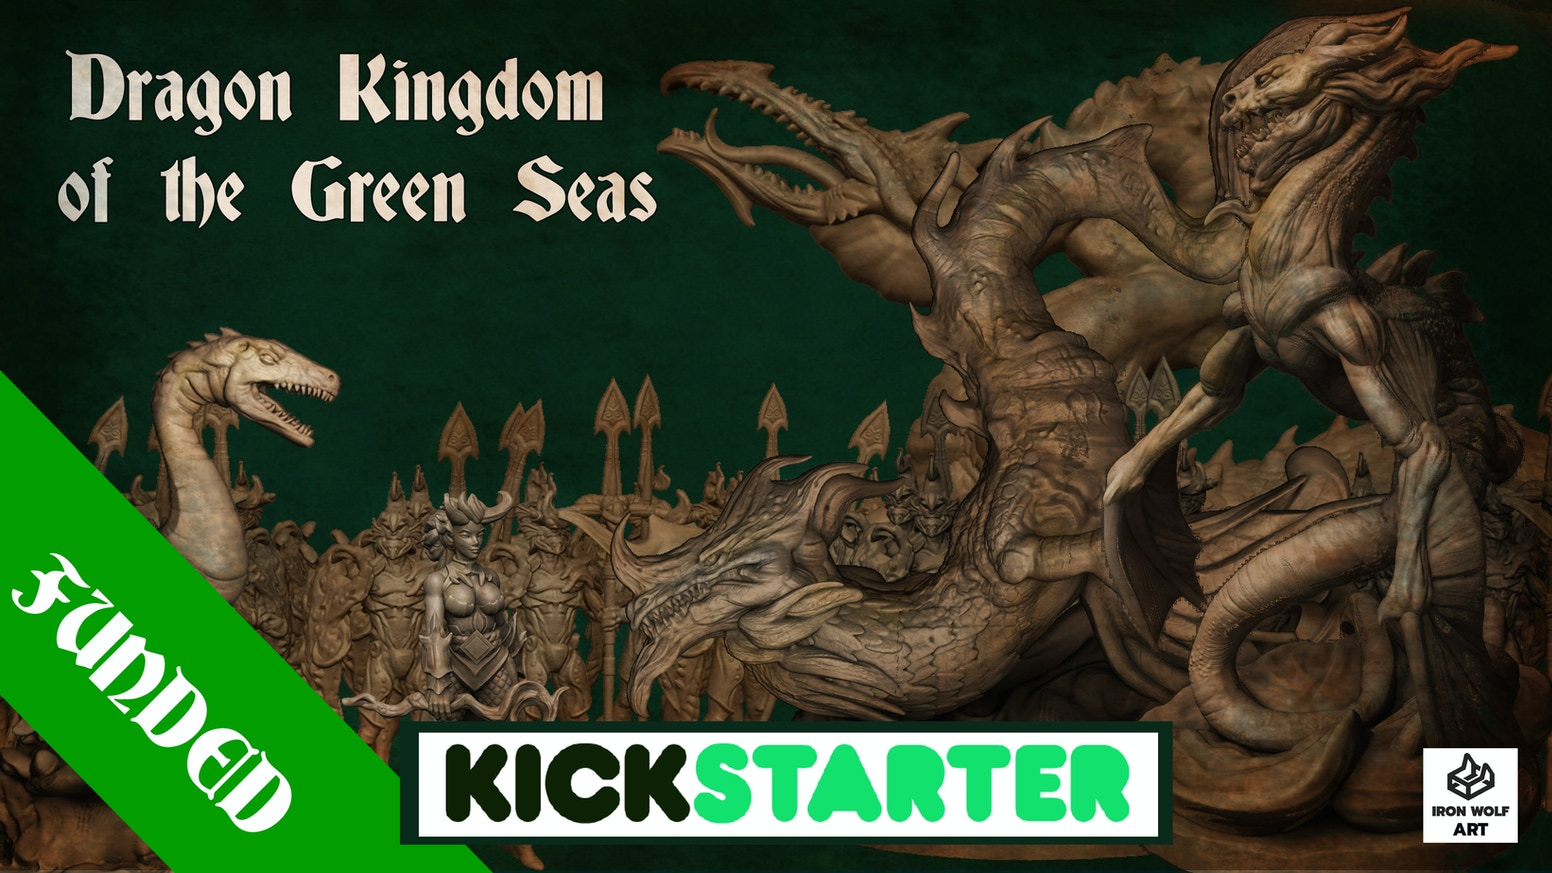 "Welcome to the ""Dragon Kingdom of the Green Sea"" - a dangerous, and adventure-filled environment full of monsters, heroes and magic"